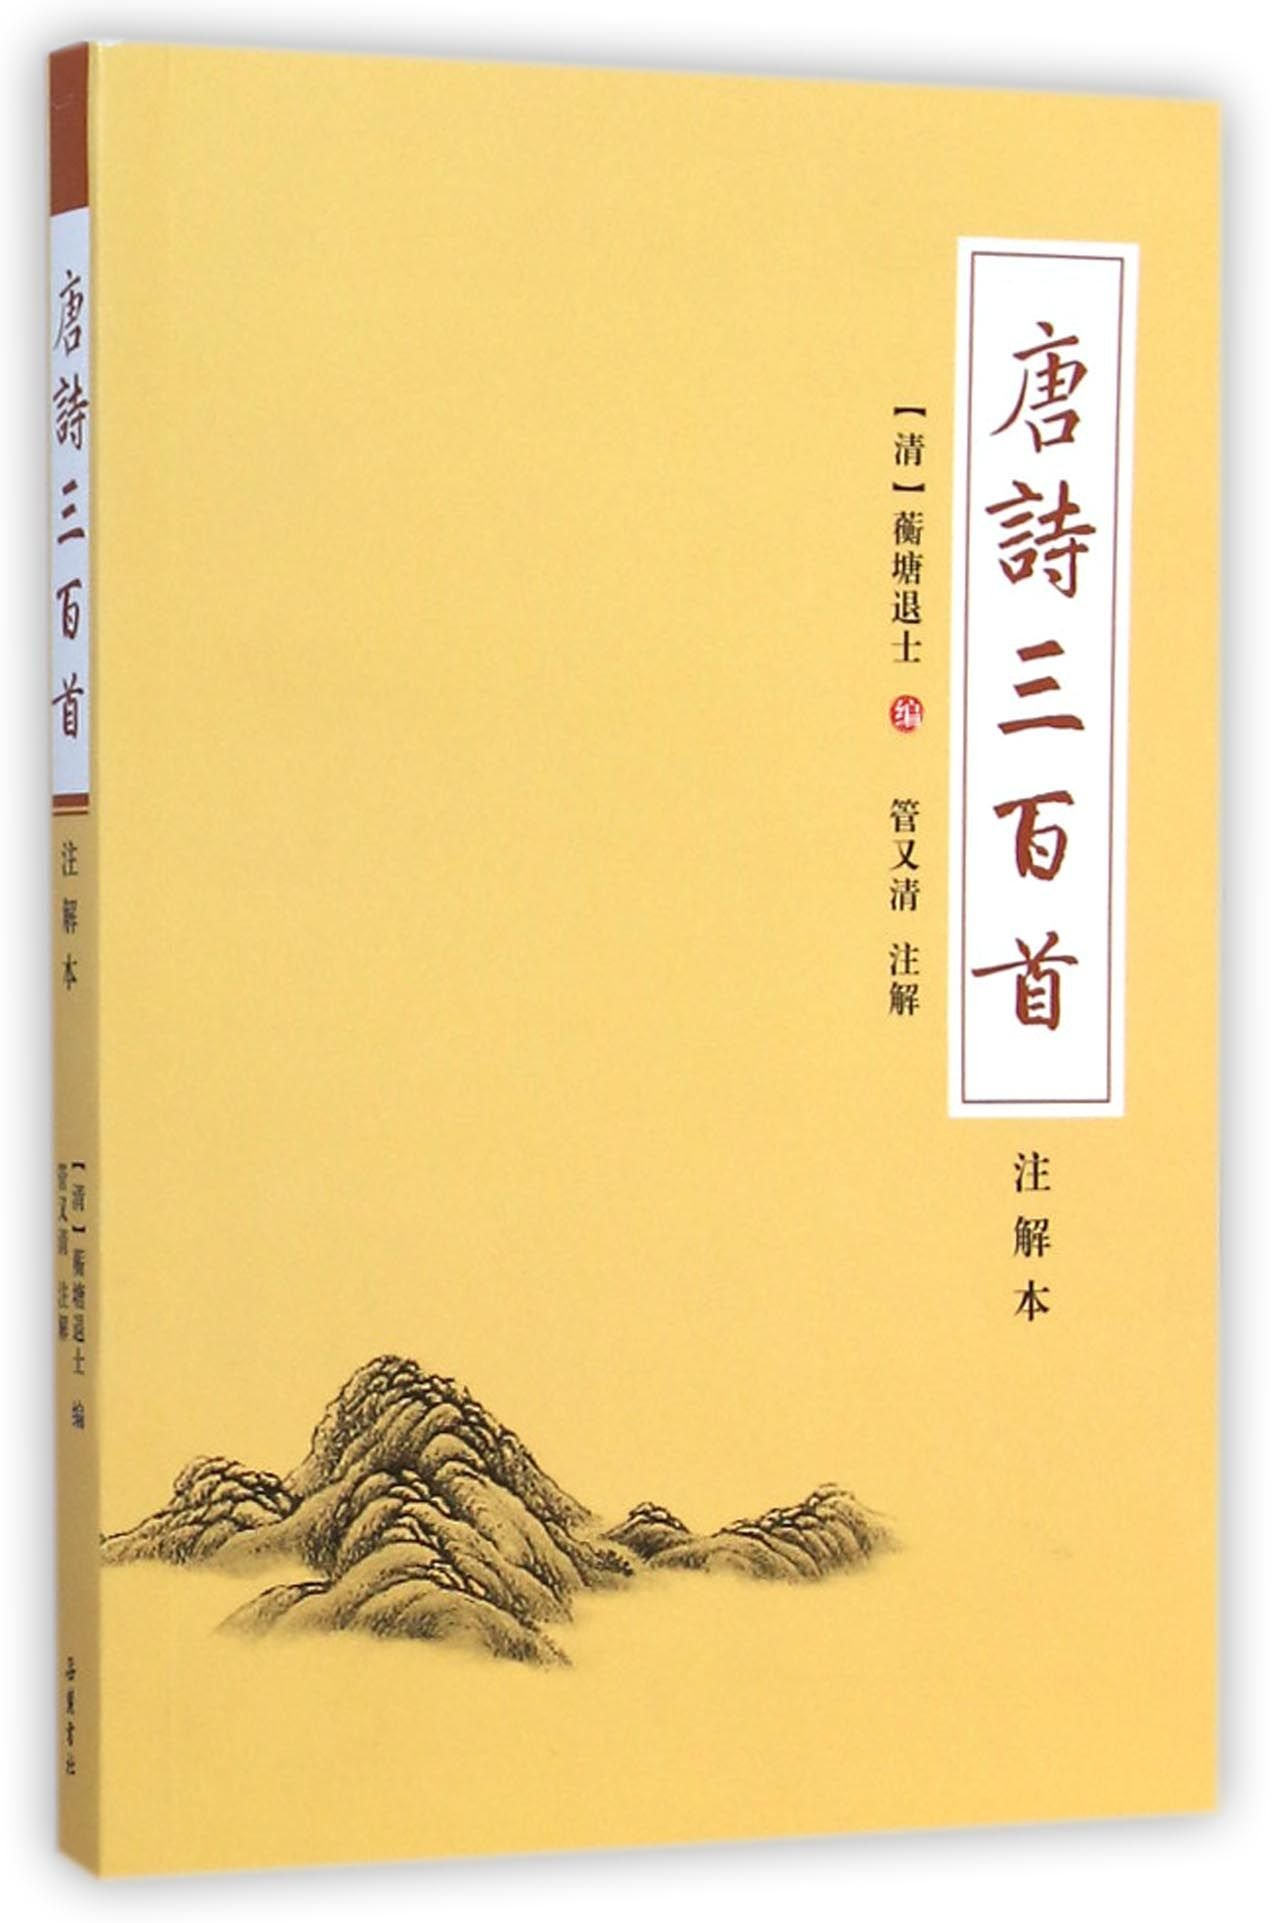 Three hundred Tang Poems (Chinese Edition) image